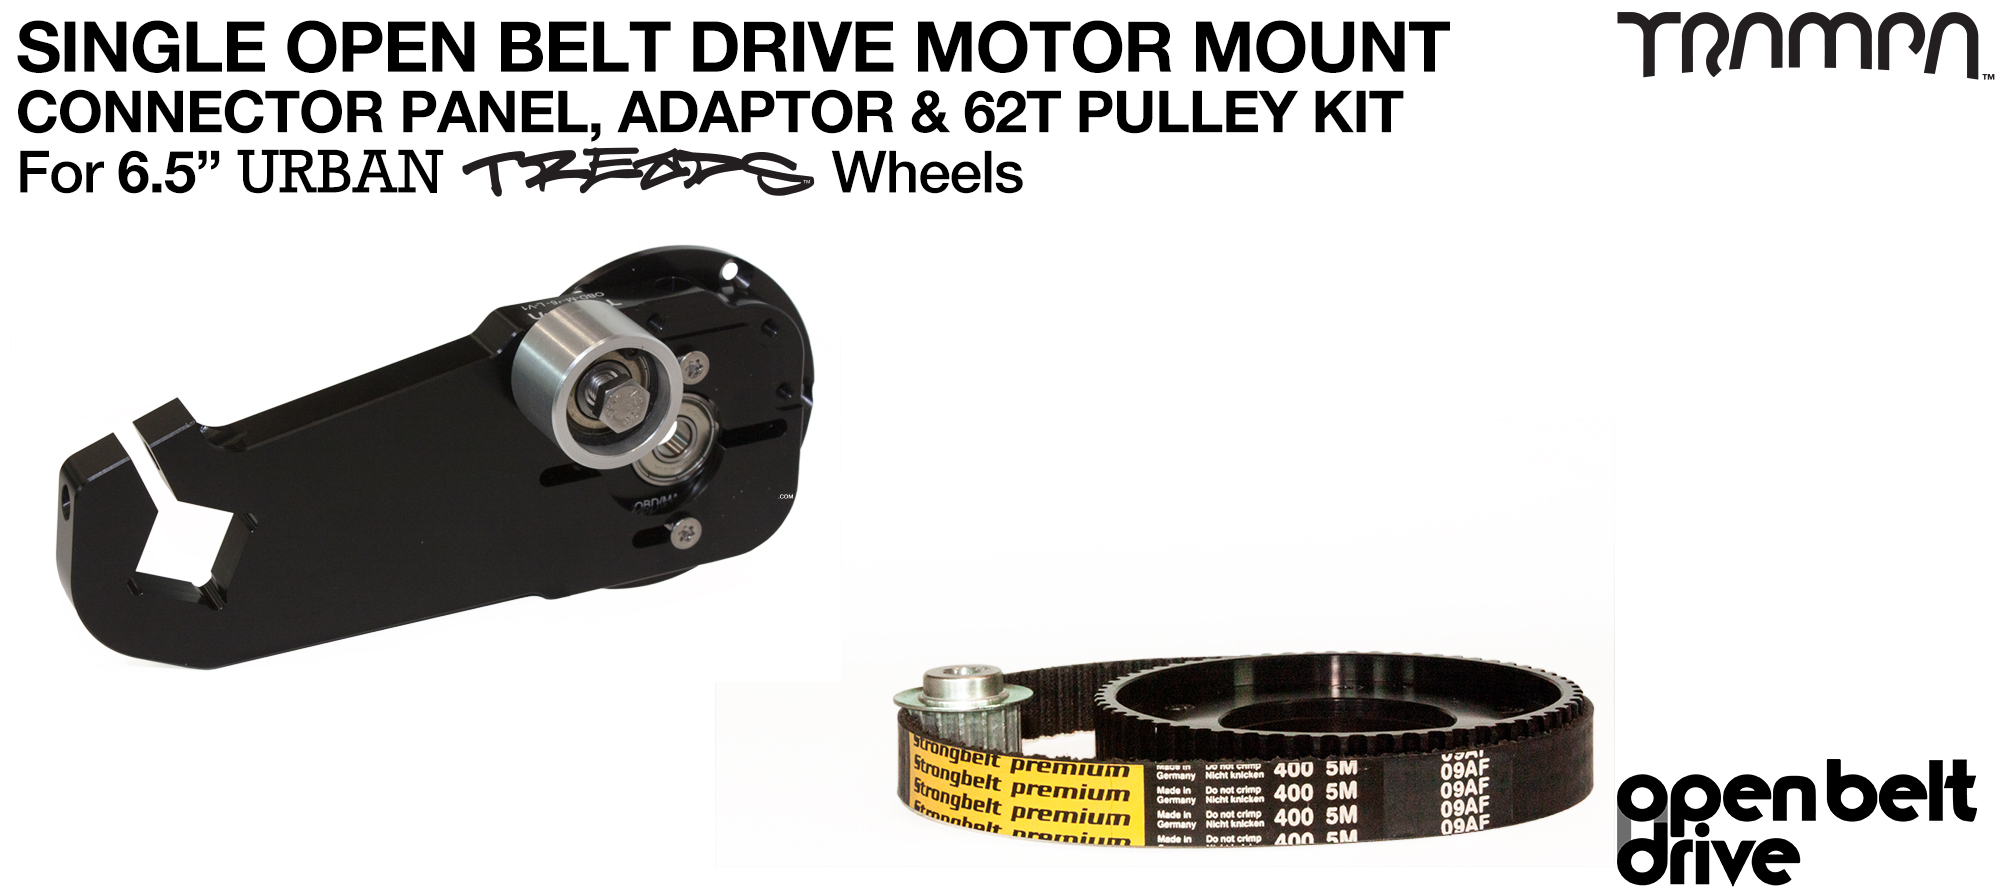 66T OBD Motor Mount & 62 tooth Pulley - SINGLE